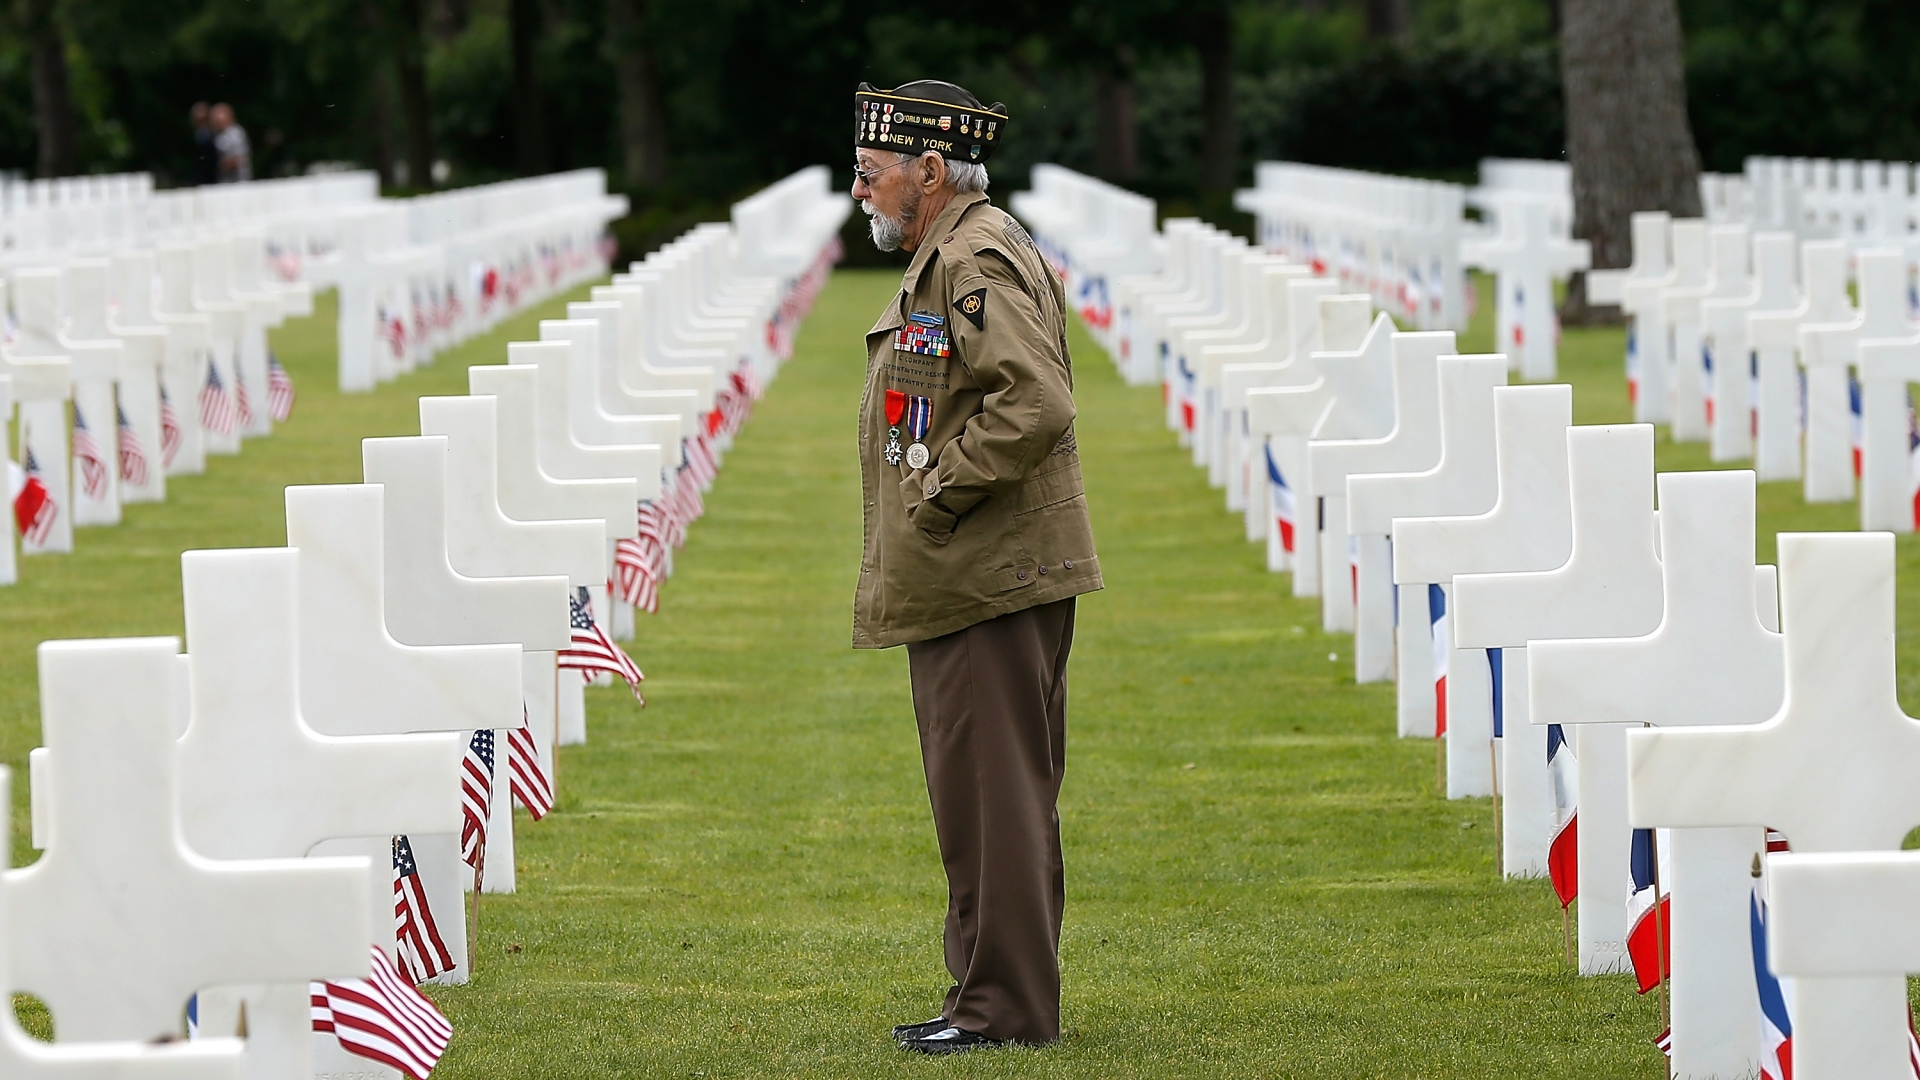 World War II veteran William Spriggs, of the 83rd Infantry Division and who took part in the invasion of Normandy, searches for fallen comrades in the Normandy American Cemetery, 2014. (Credit: Win McNamee/Getty Images)